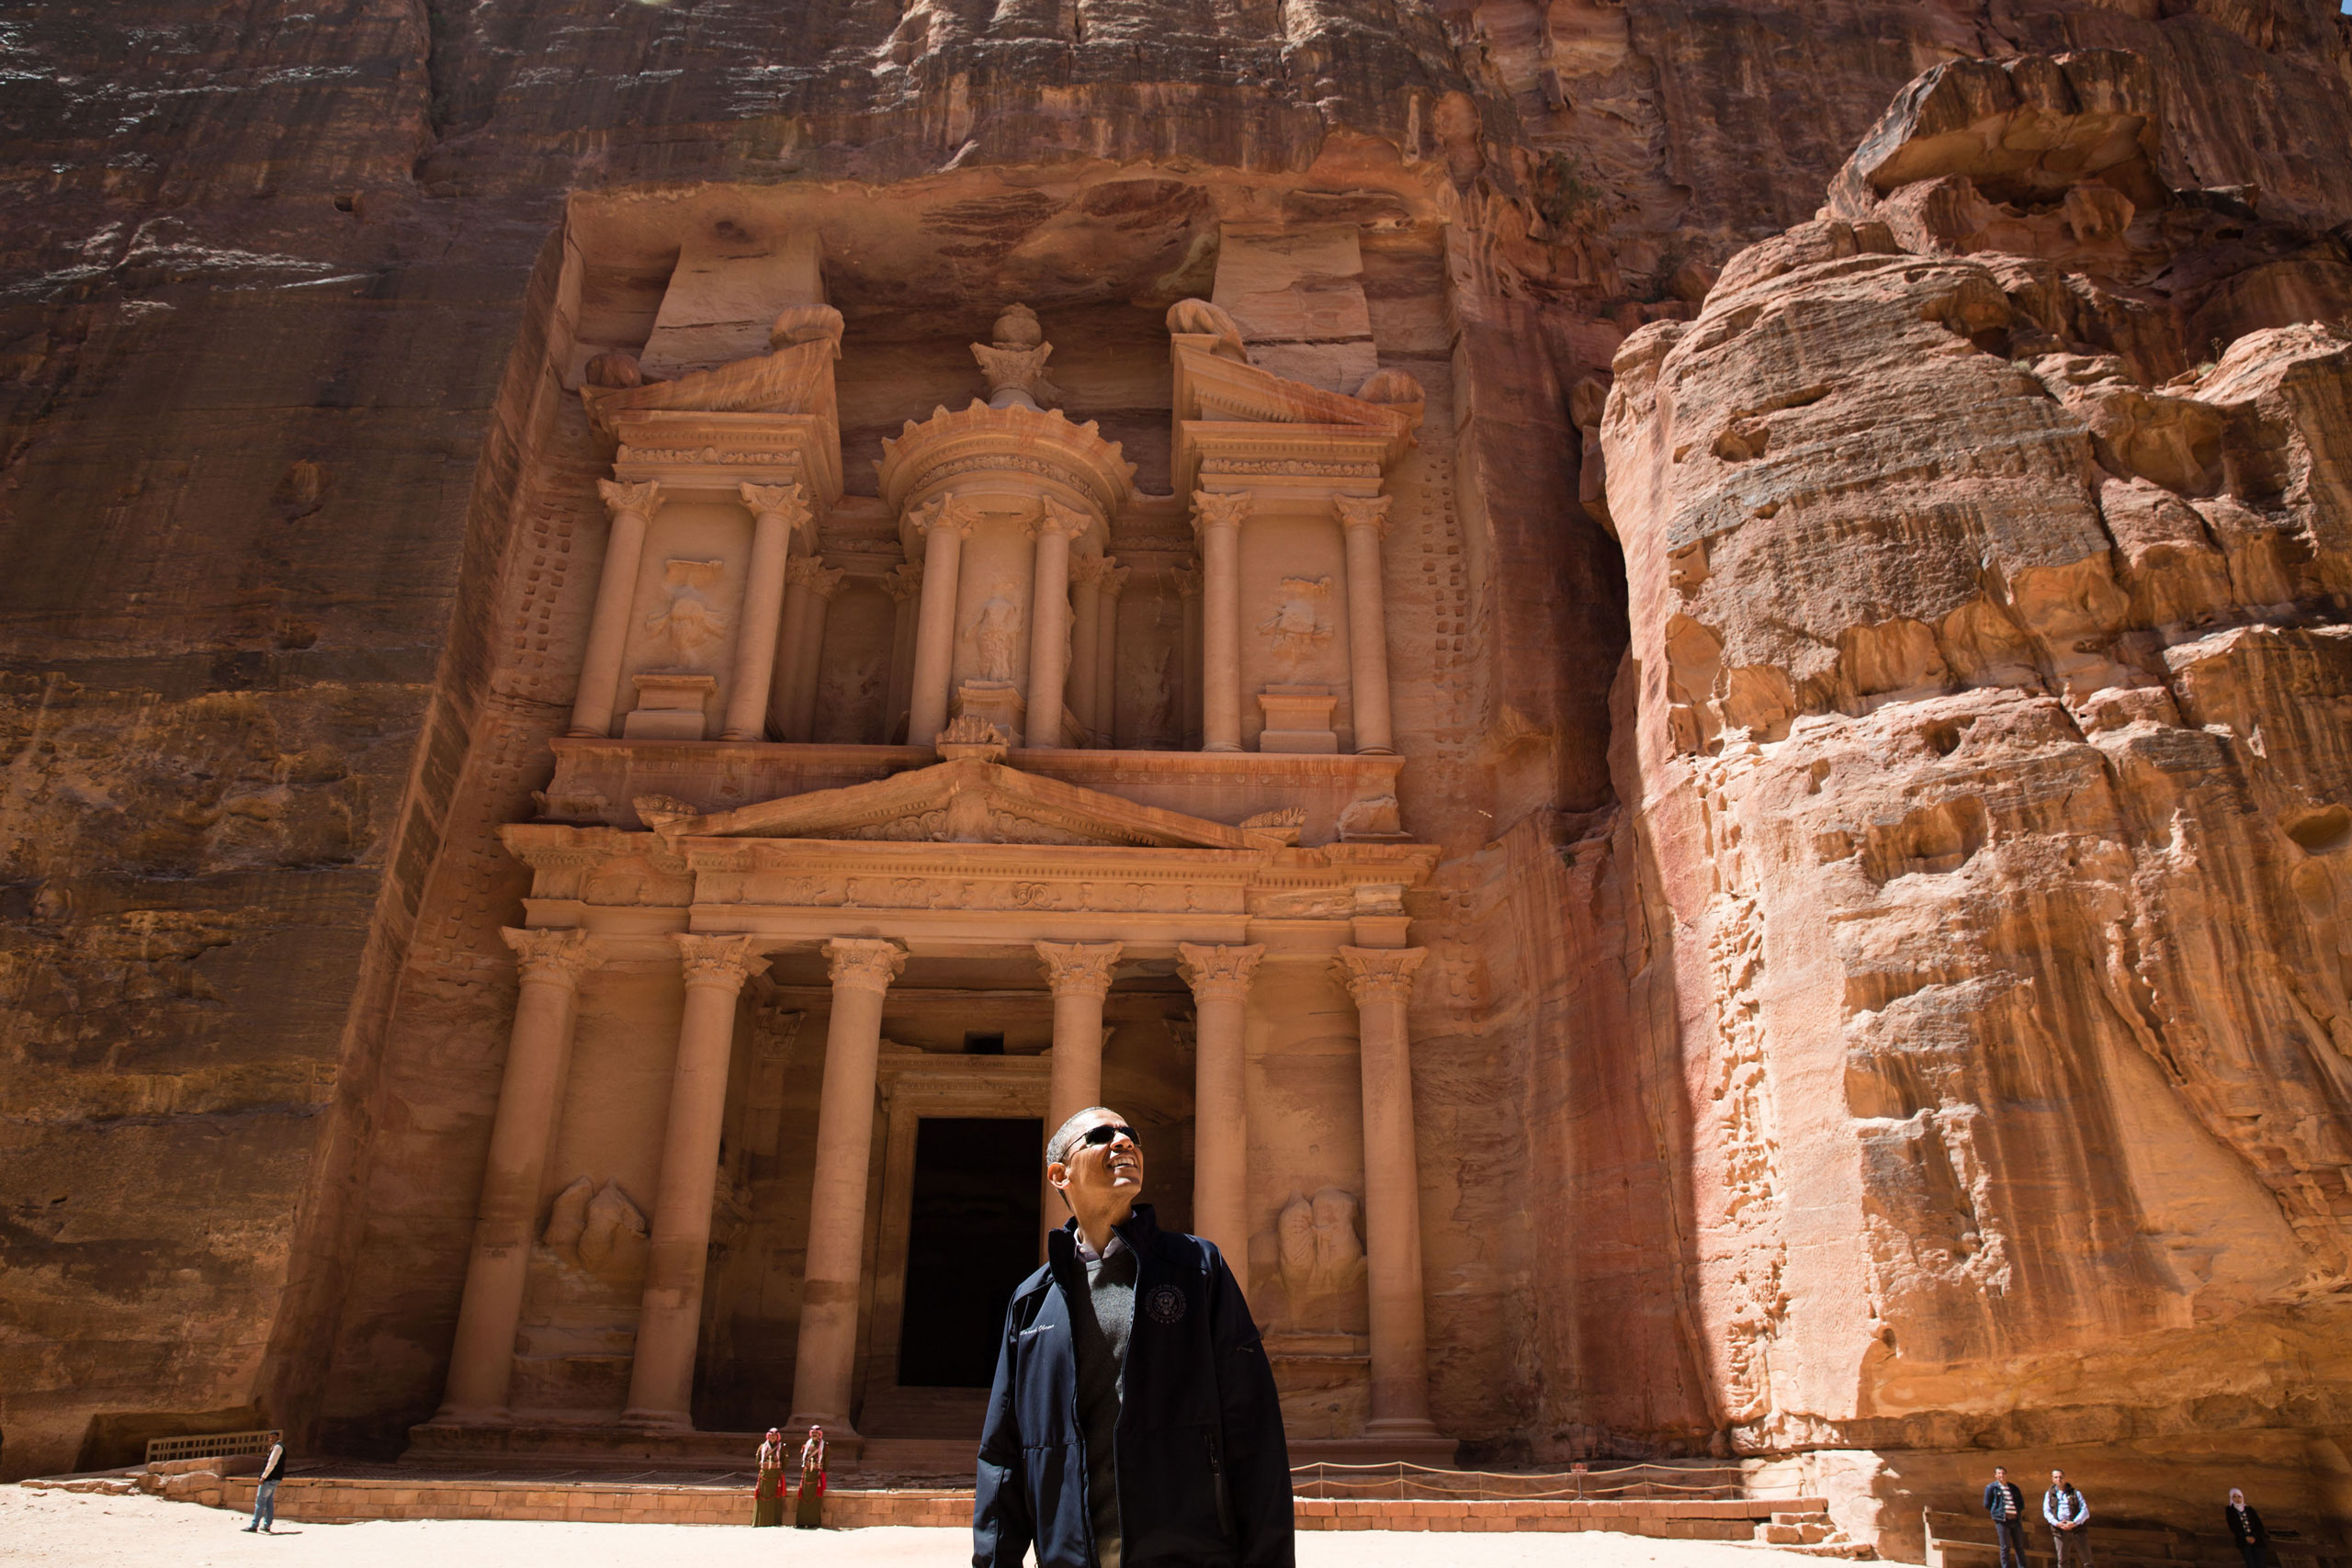 President Barack Obama views the area near the Treasury during a walking tour of the ancient city of Petra in Jordan, March 23, 2013.